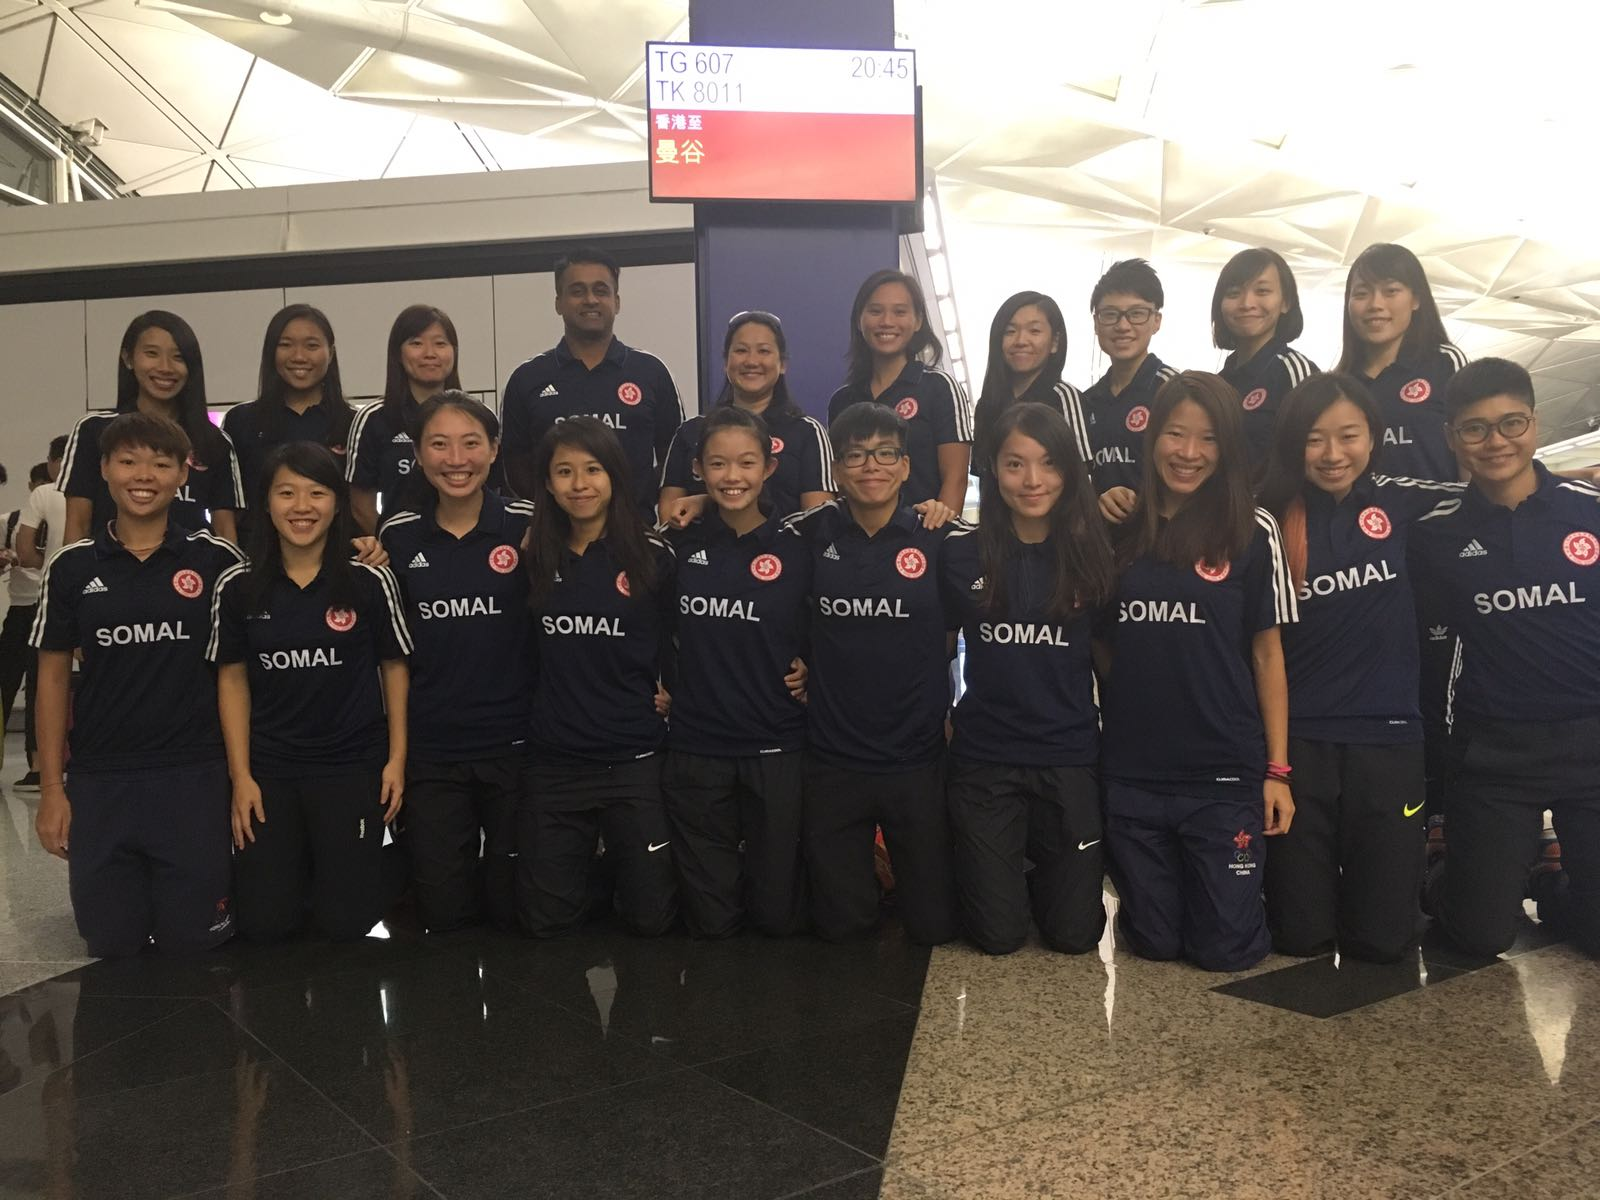 Hong Kong Women's National Squad off to Thailand to attend the 4th Women's AHF Cup